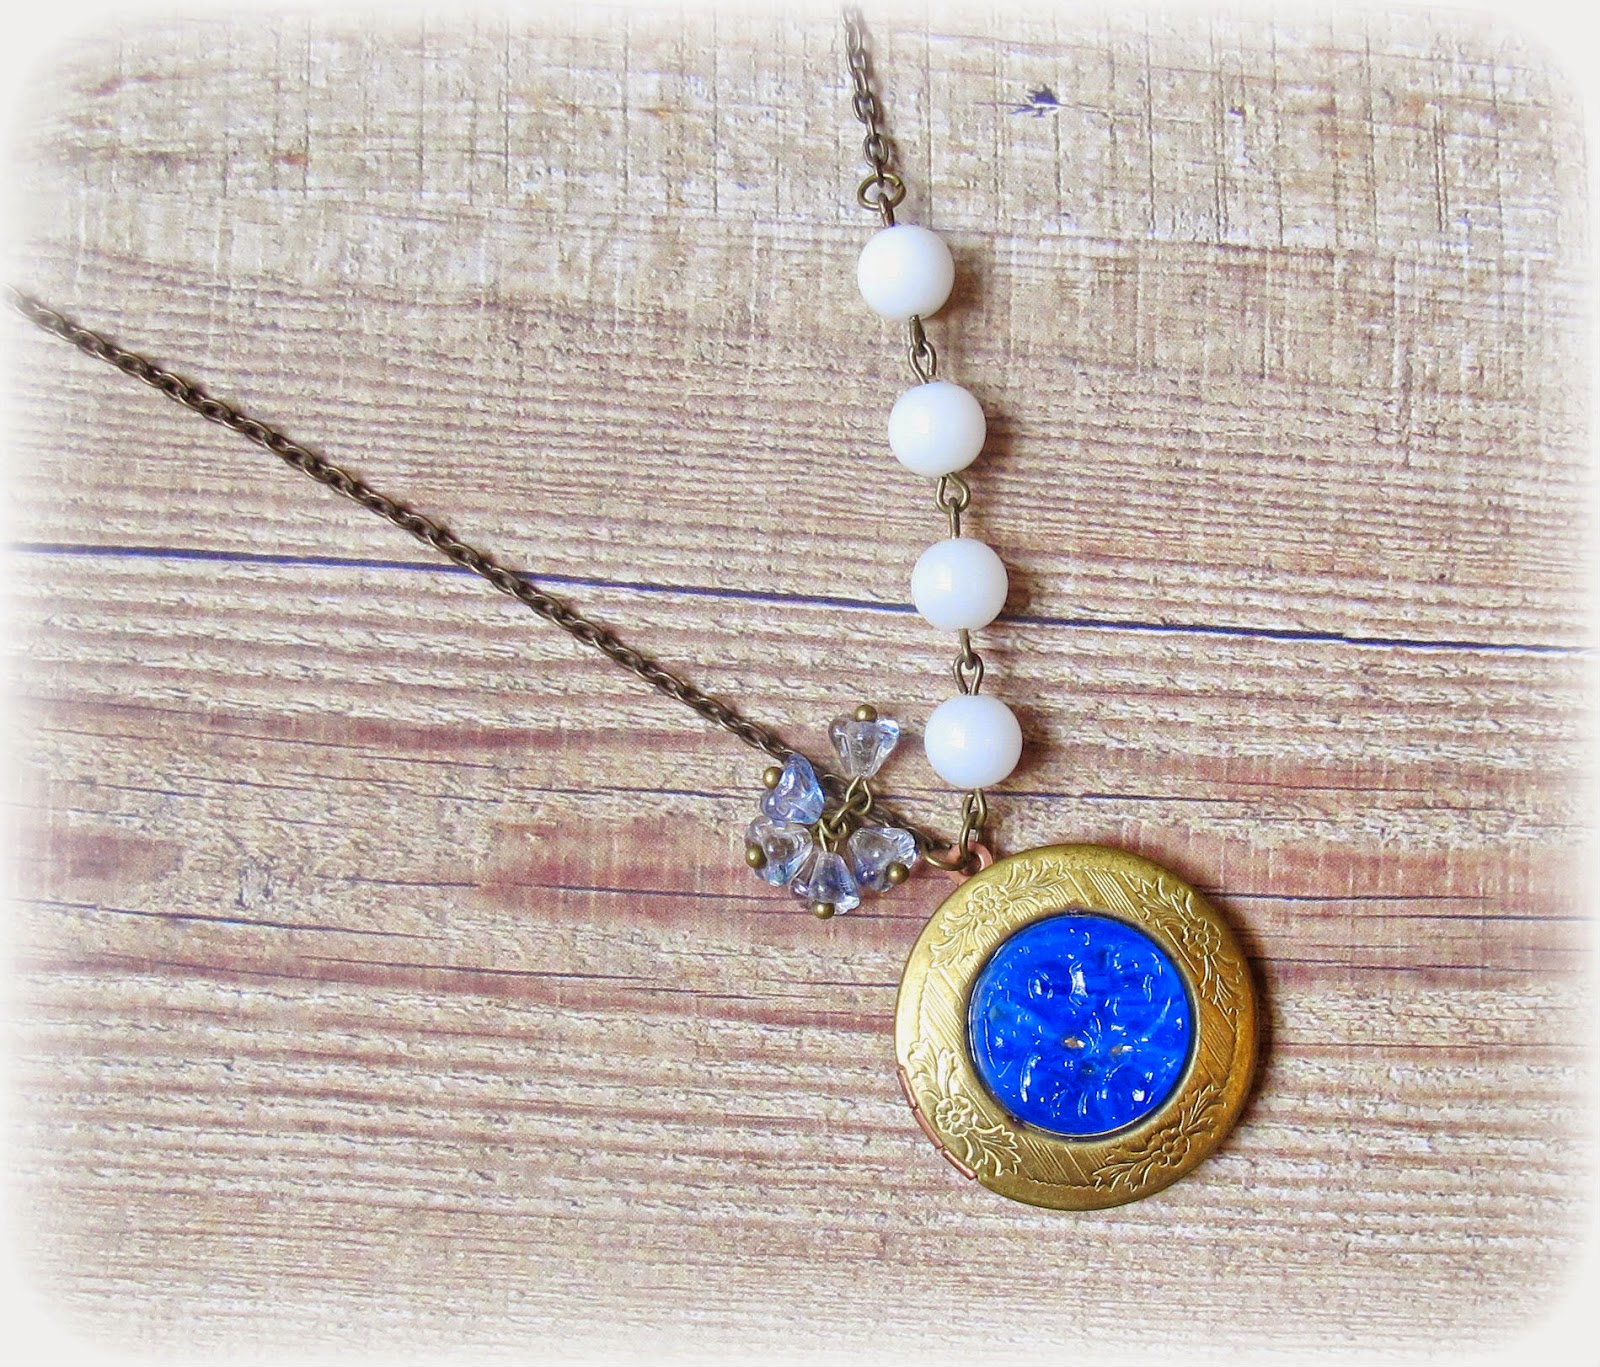 image mr darcy locket necklace pride and prejudice jane austen brass blue white vintage two cheeky monkeys